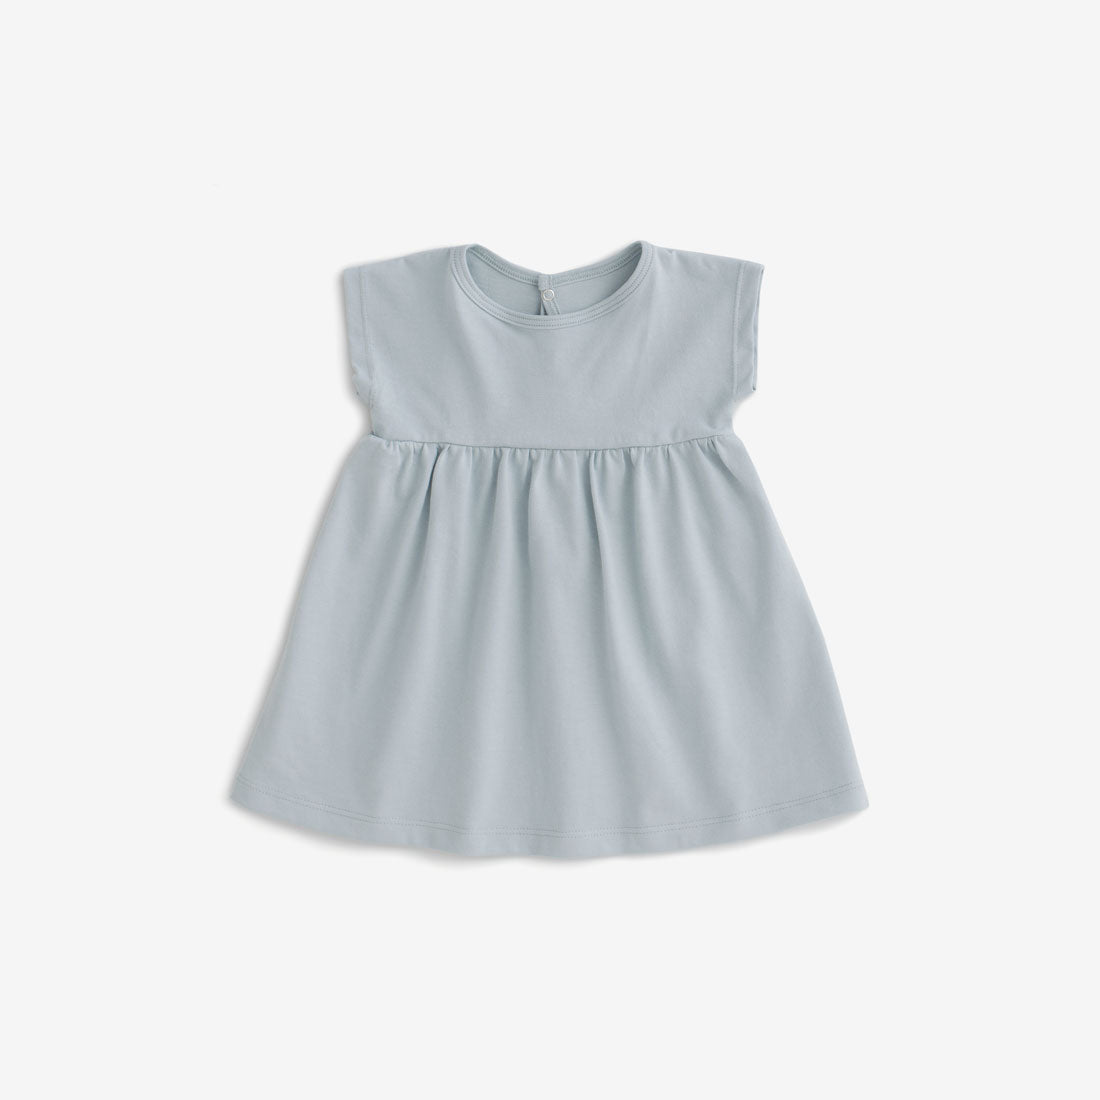 Merano Organic Jersey Baby Dress - Pale Blue